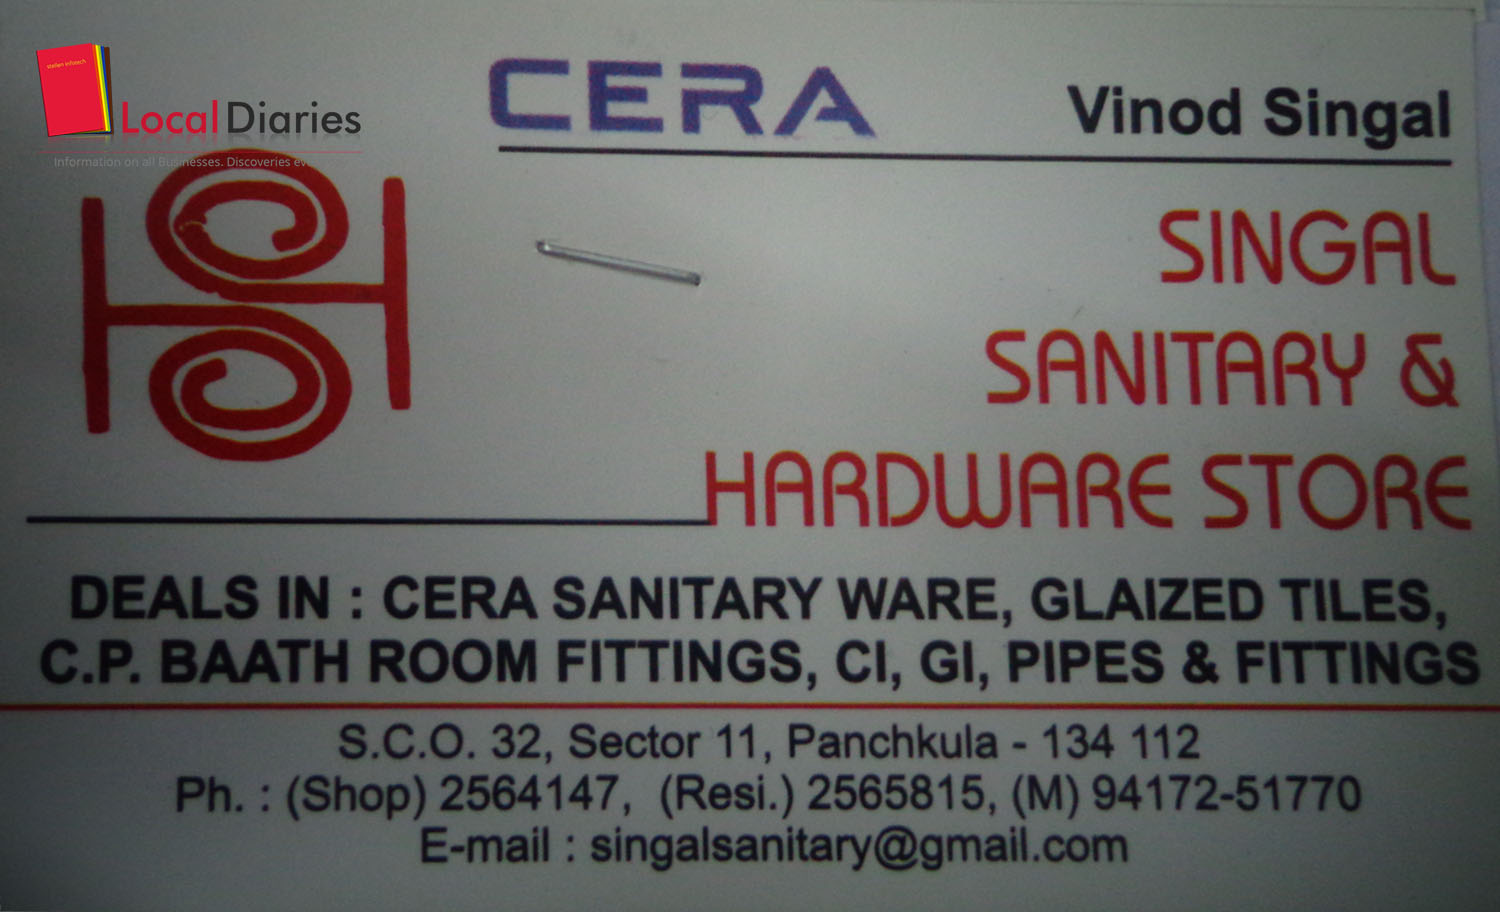 Bathroom fitting manufacturers - Singal Sanitary And Hardware Store